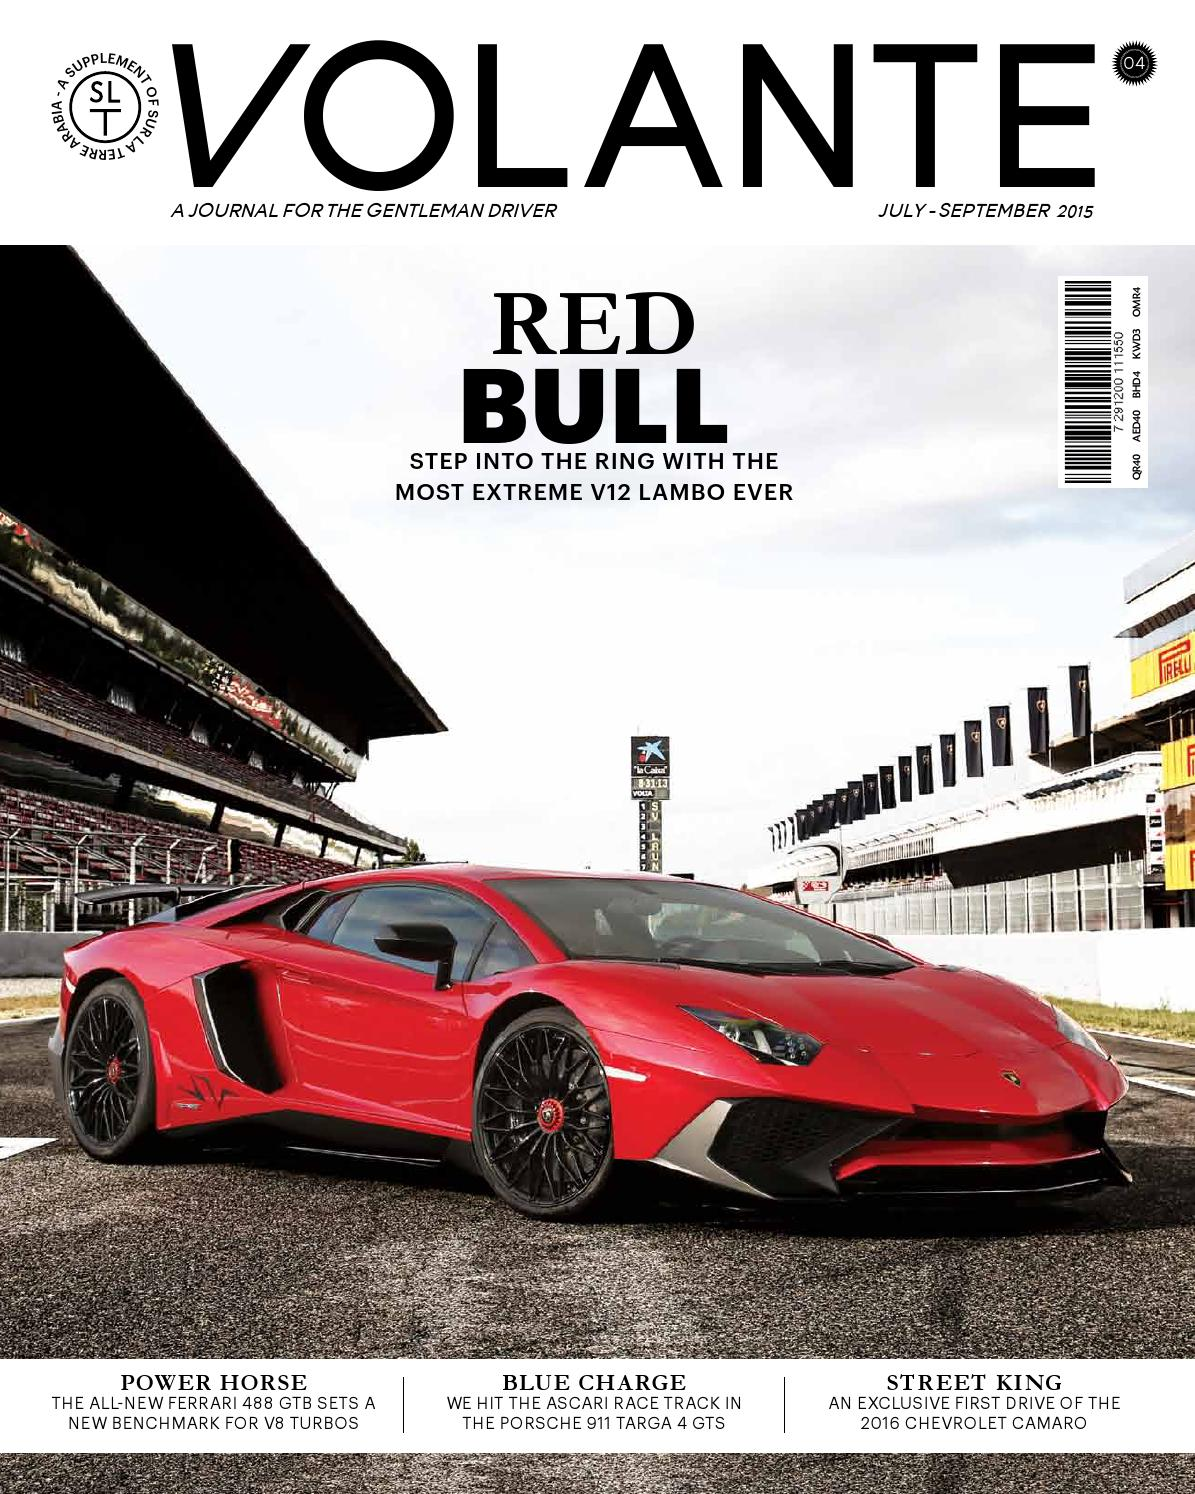 1380925d47e Volante - Issue 4 - July 2015 by Firefly Communications - issuu